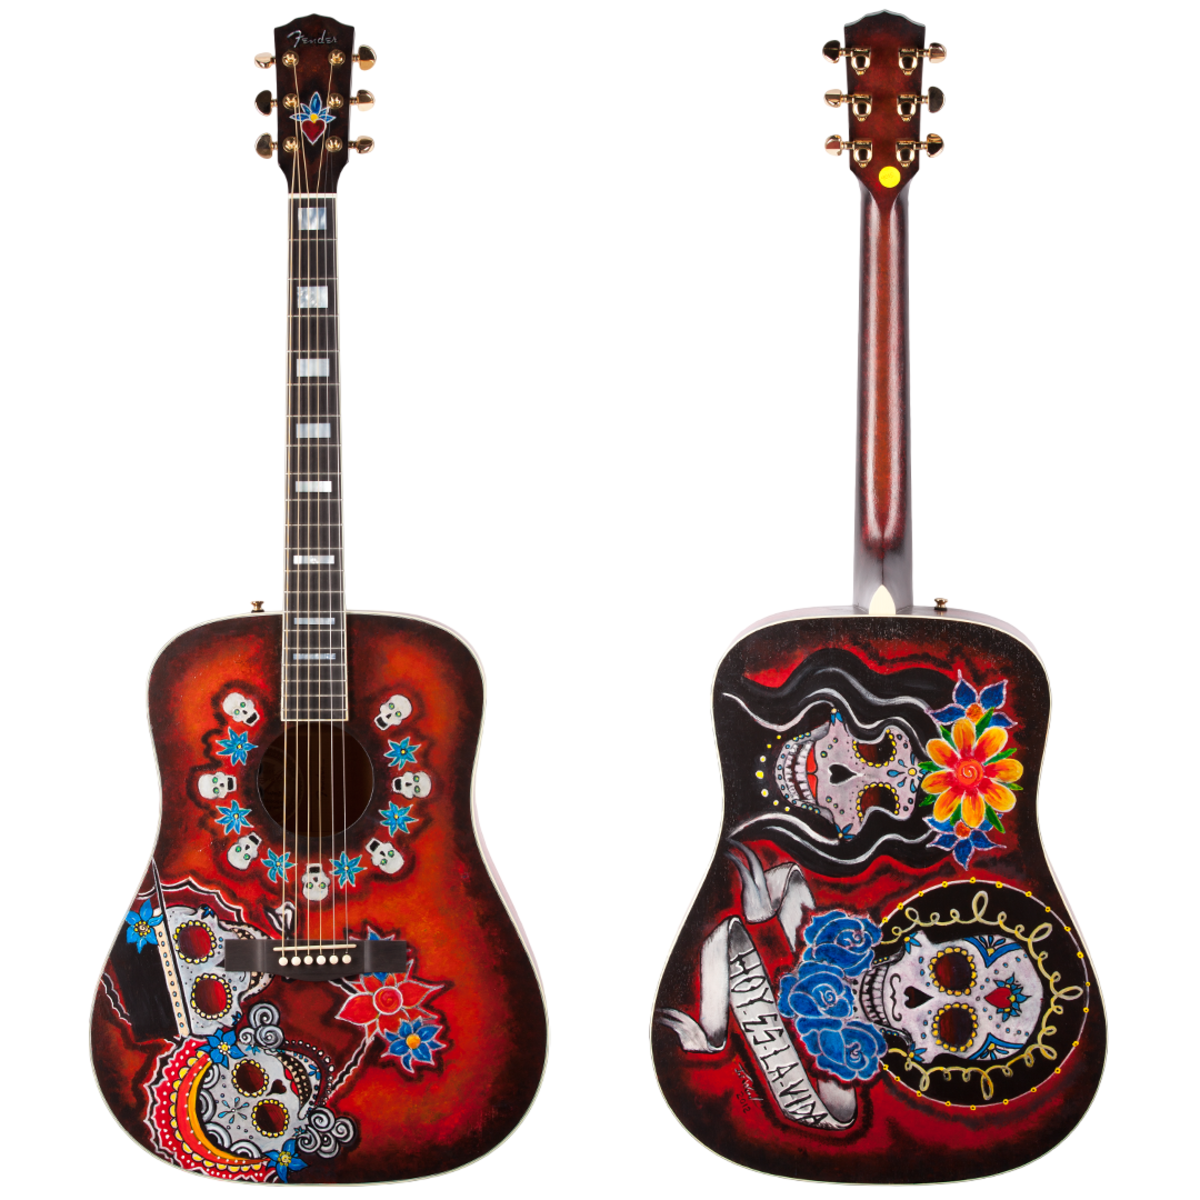 The Fender Dia De Los Muertos Acoustic Guitar, front and back.